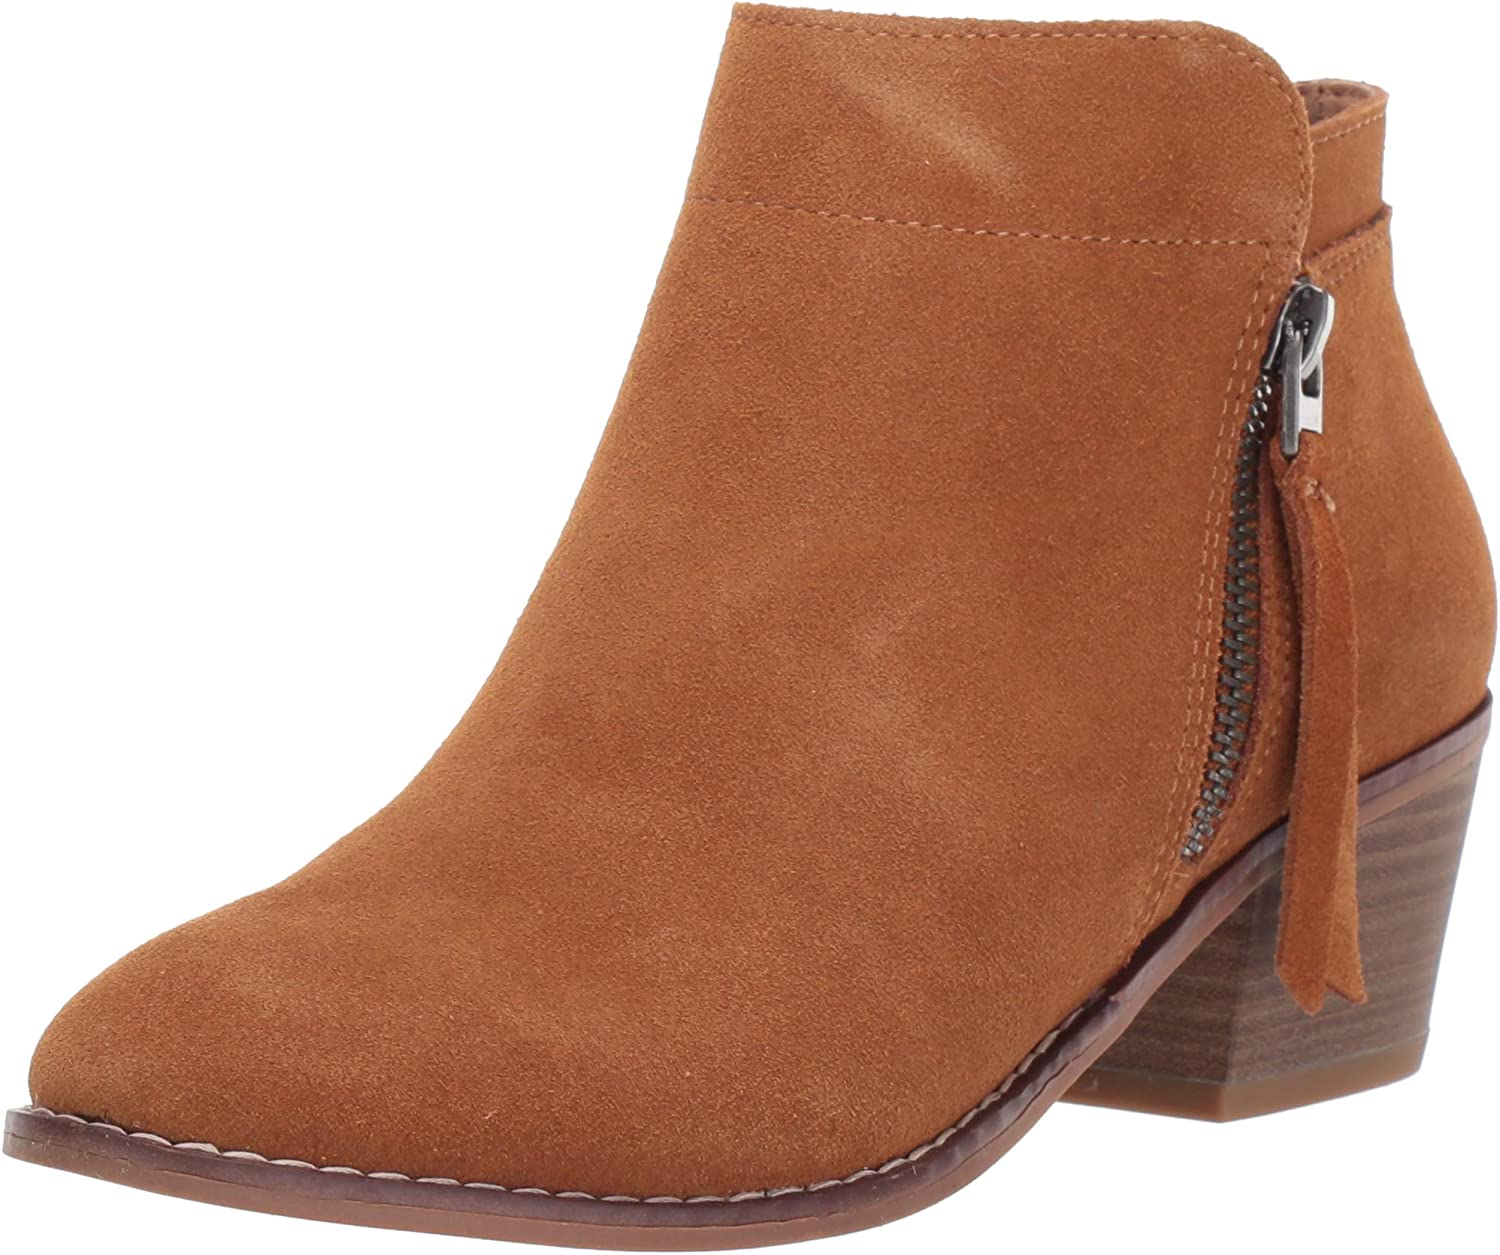 Amazon Brand - 206 Collective Women's Aria Leather Ankle Boot